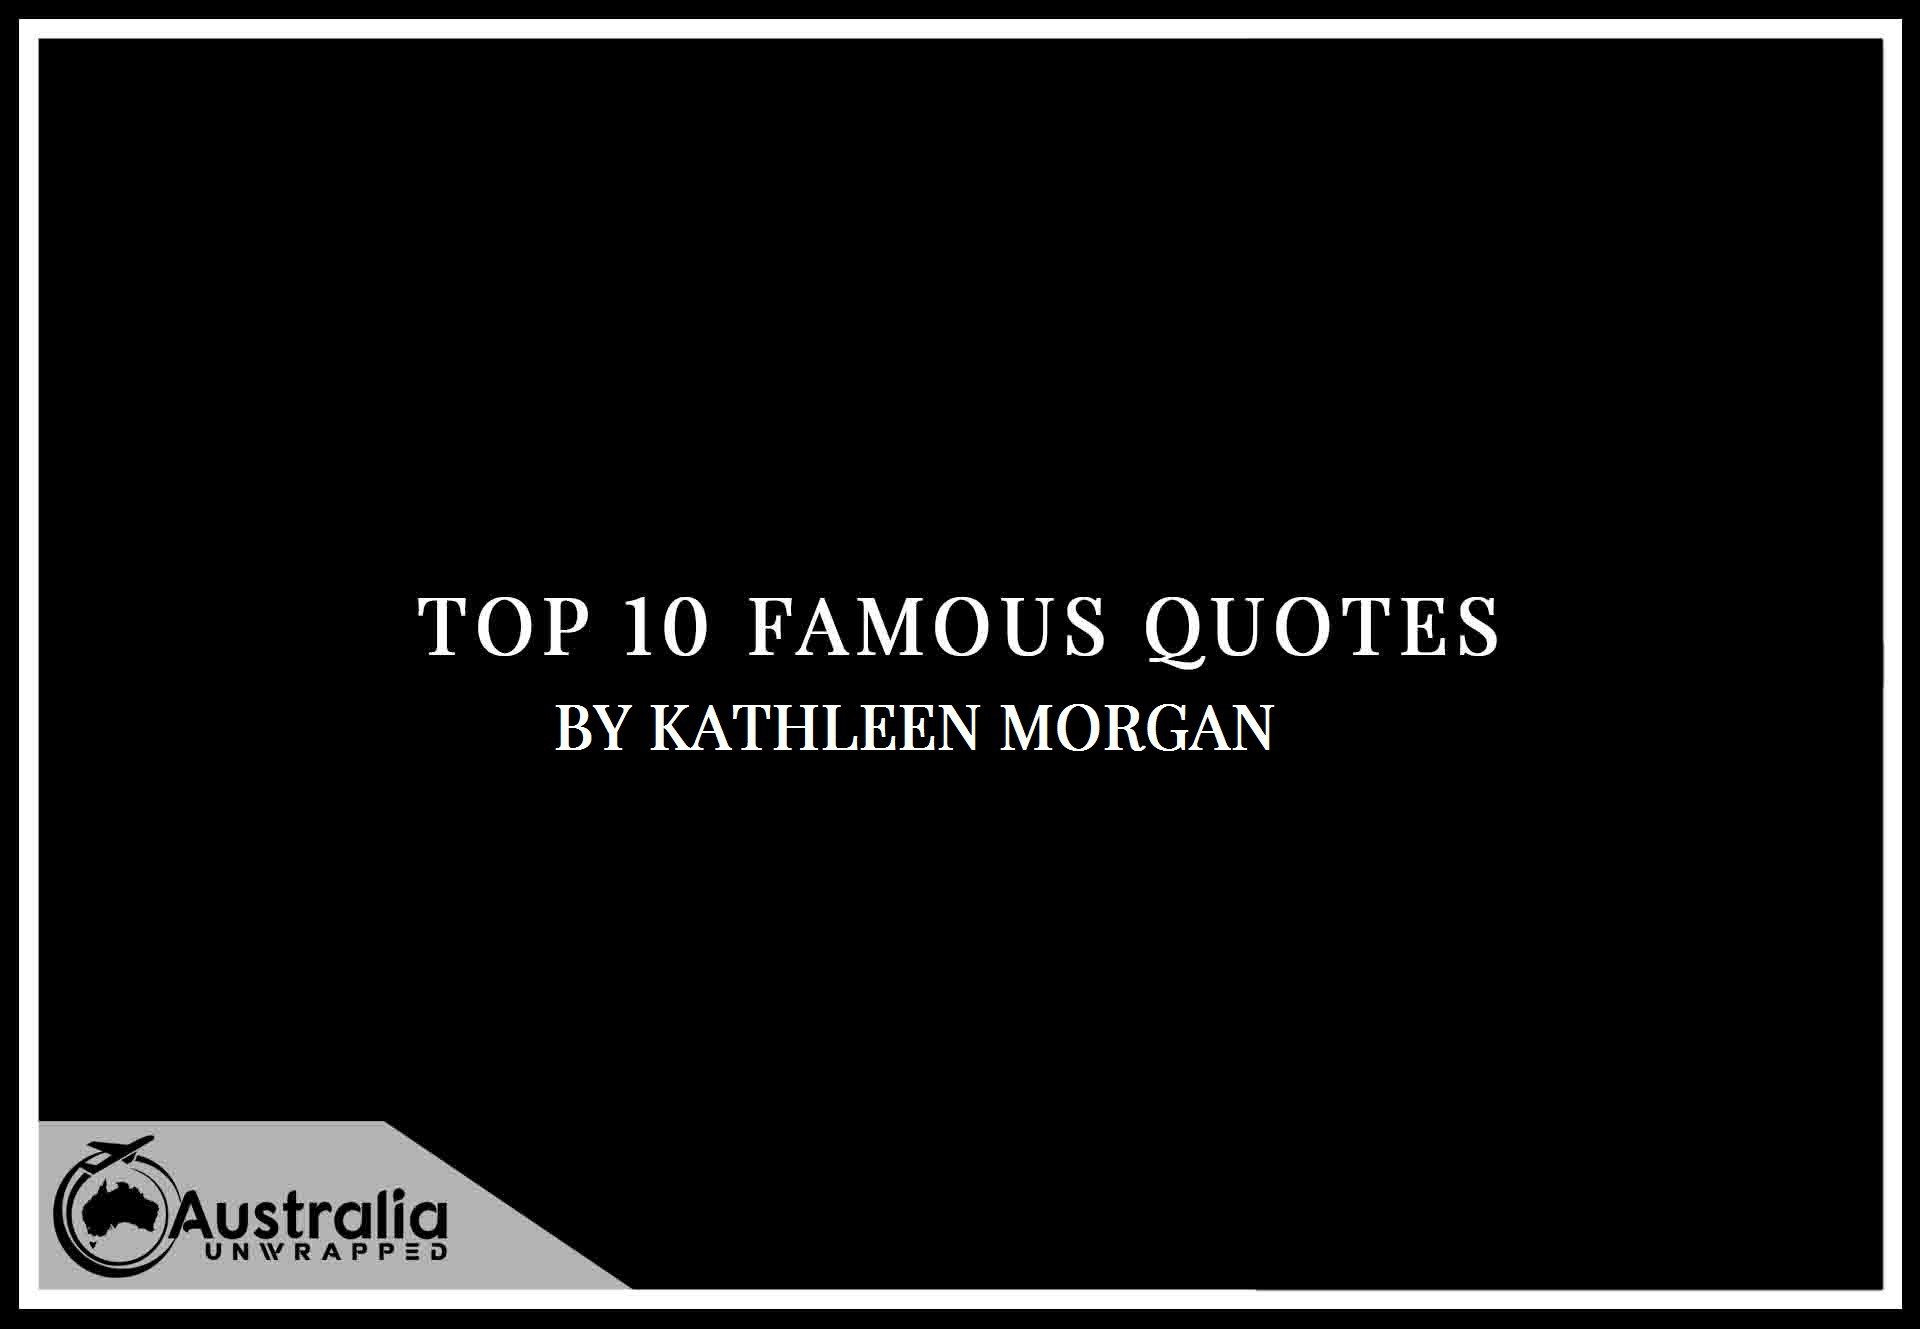 Kathleen Morgan's Top 10 Popular and Famous Quotes